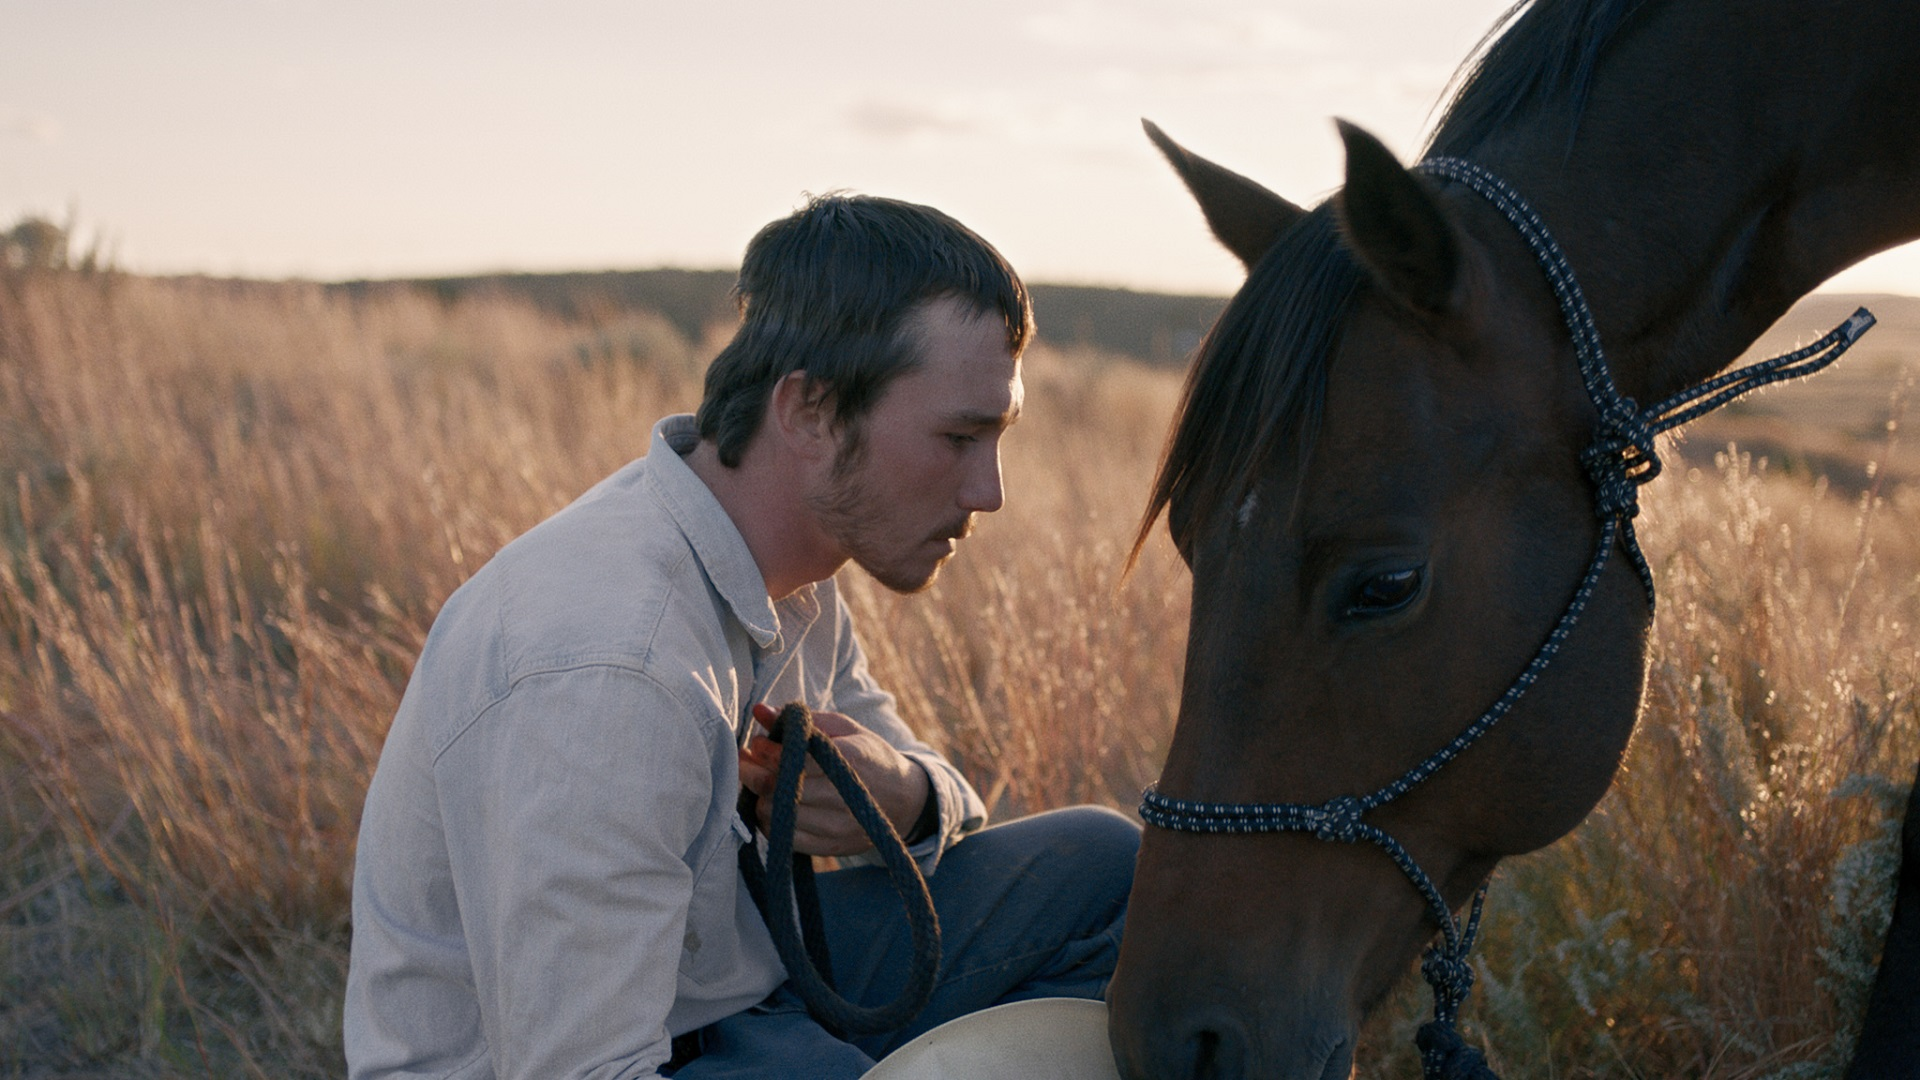 The Rider: Unexpected and Deeply Moving